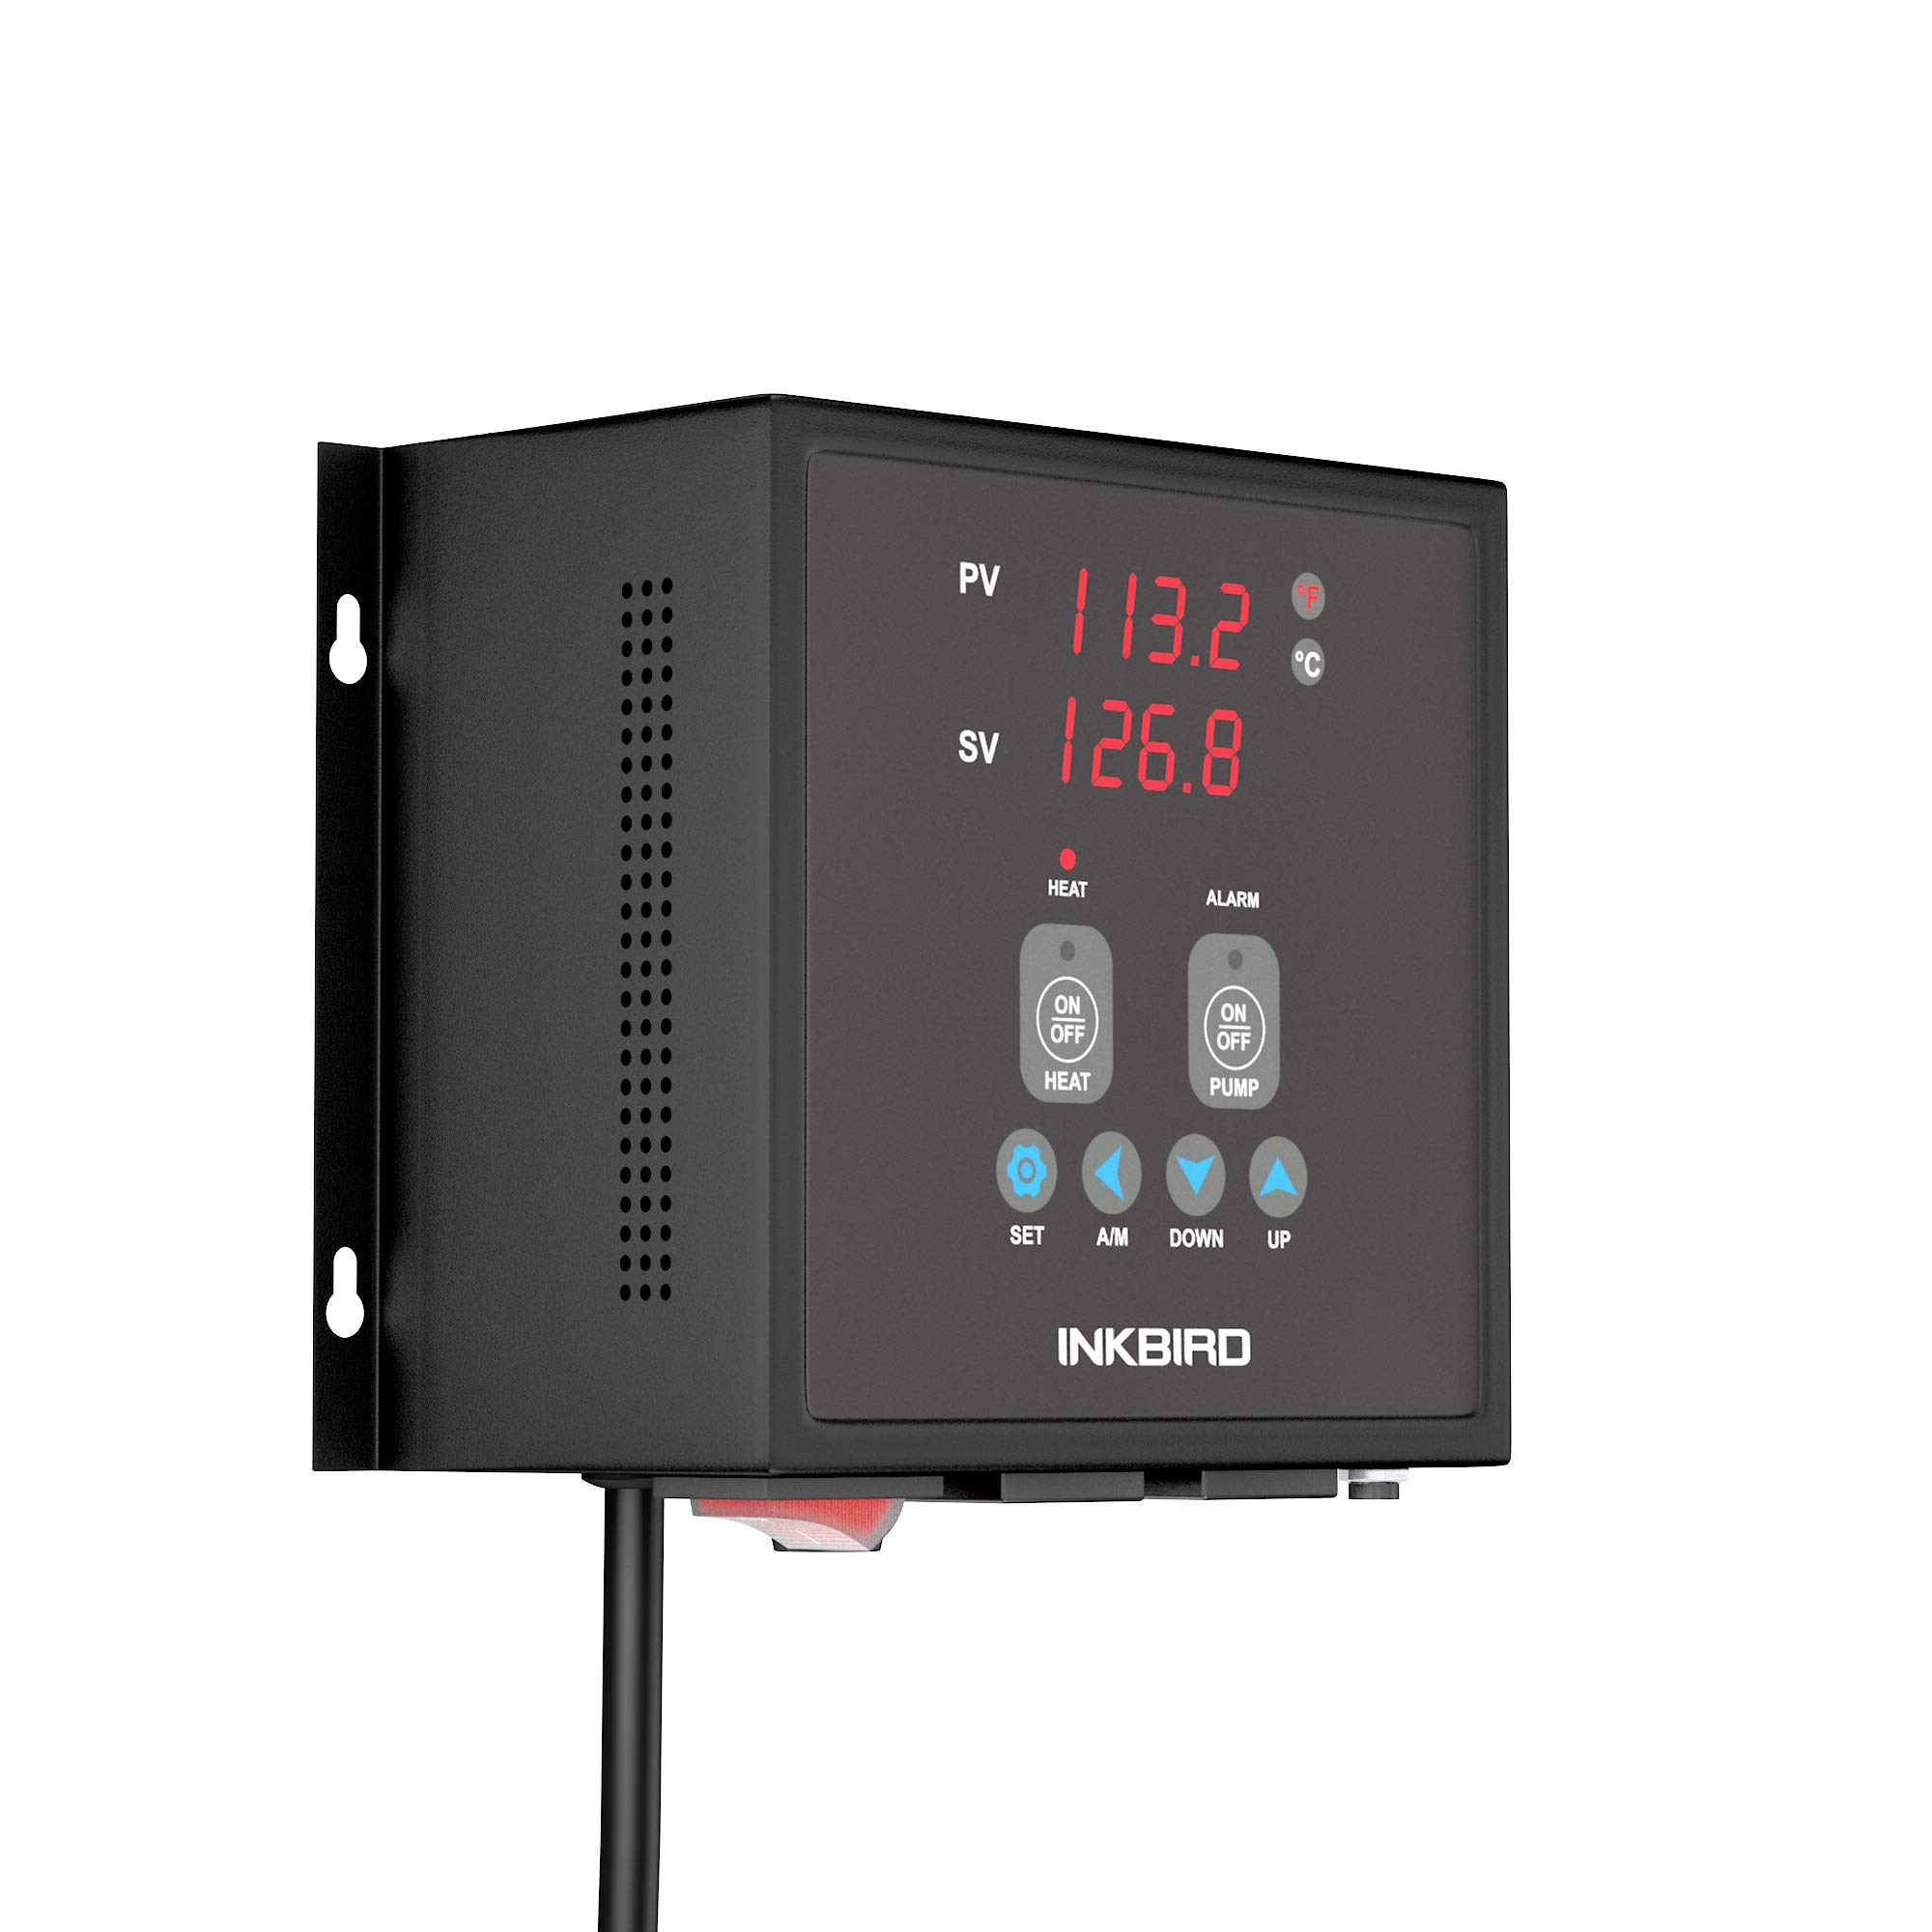 Inkbird PID Thermostat Digital Temperature Controller Alarm 1800W 120V 15A Pre Wired Output NTC Sensor R25 ℃ 10KΩ Waterproof Probe Heat Cool On Off Pump Control IPB16S by Inkbird